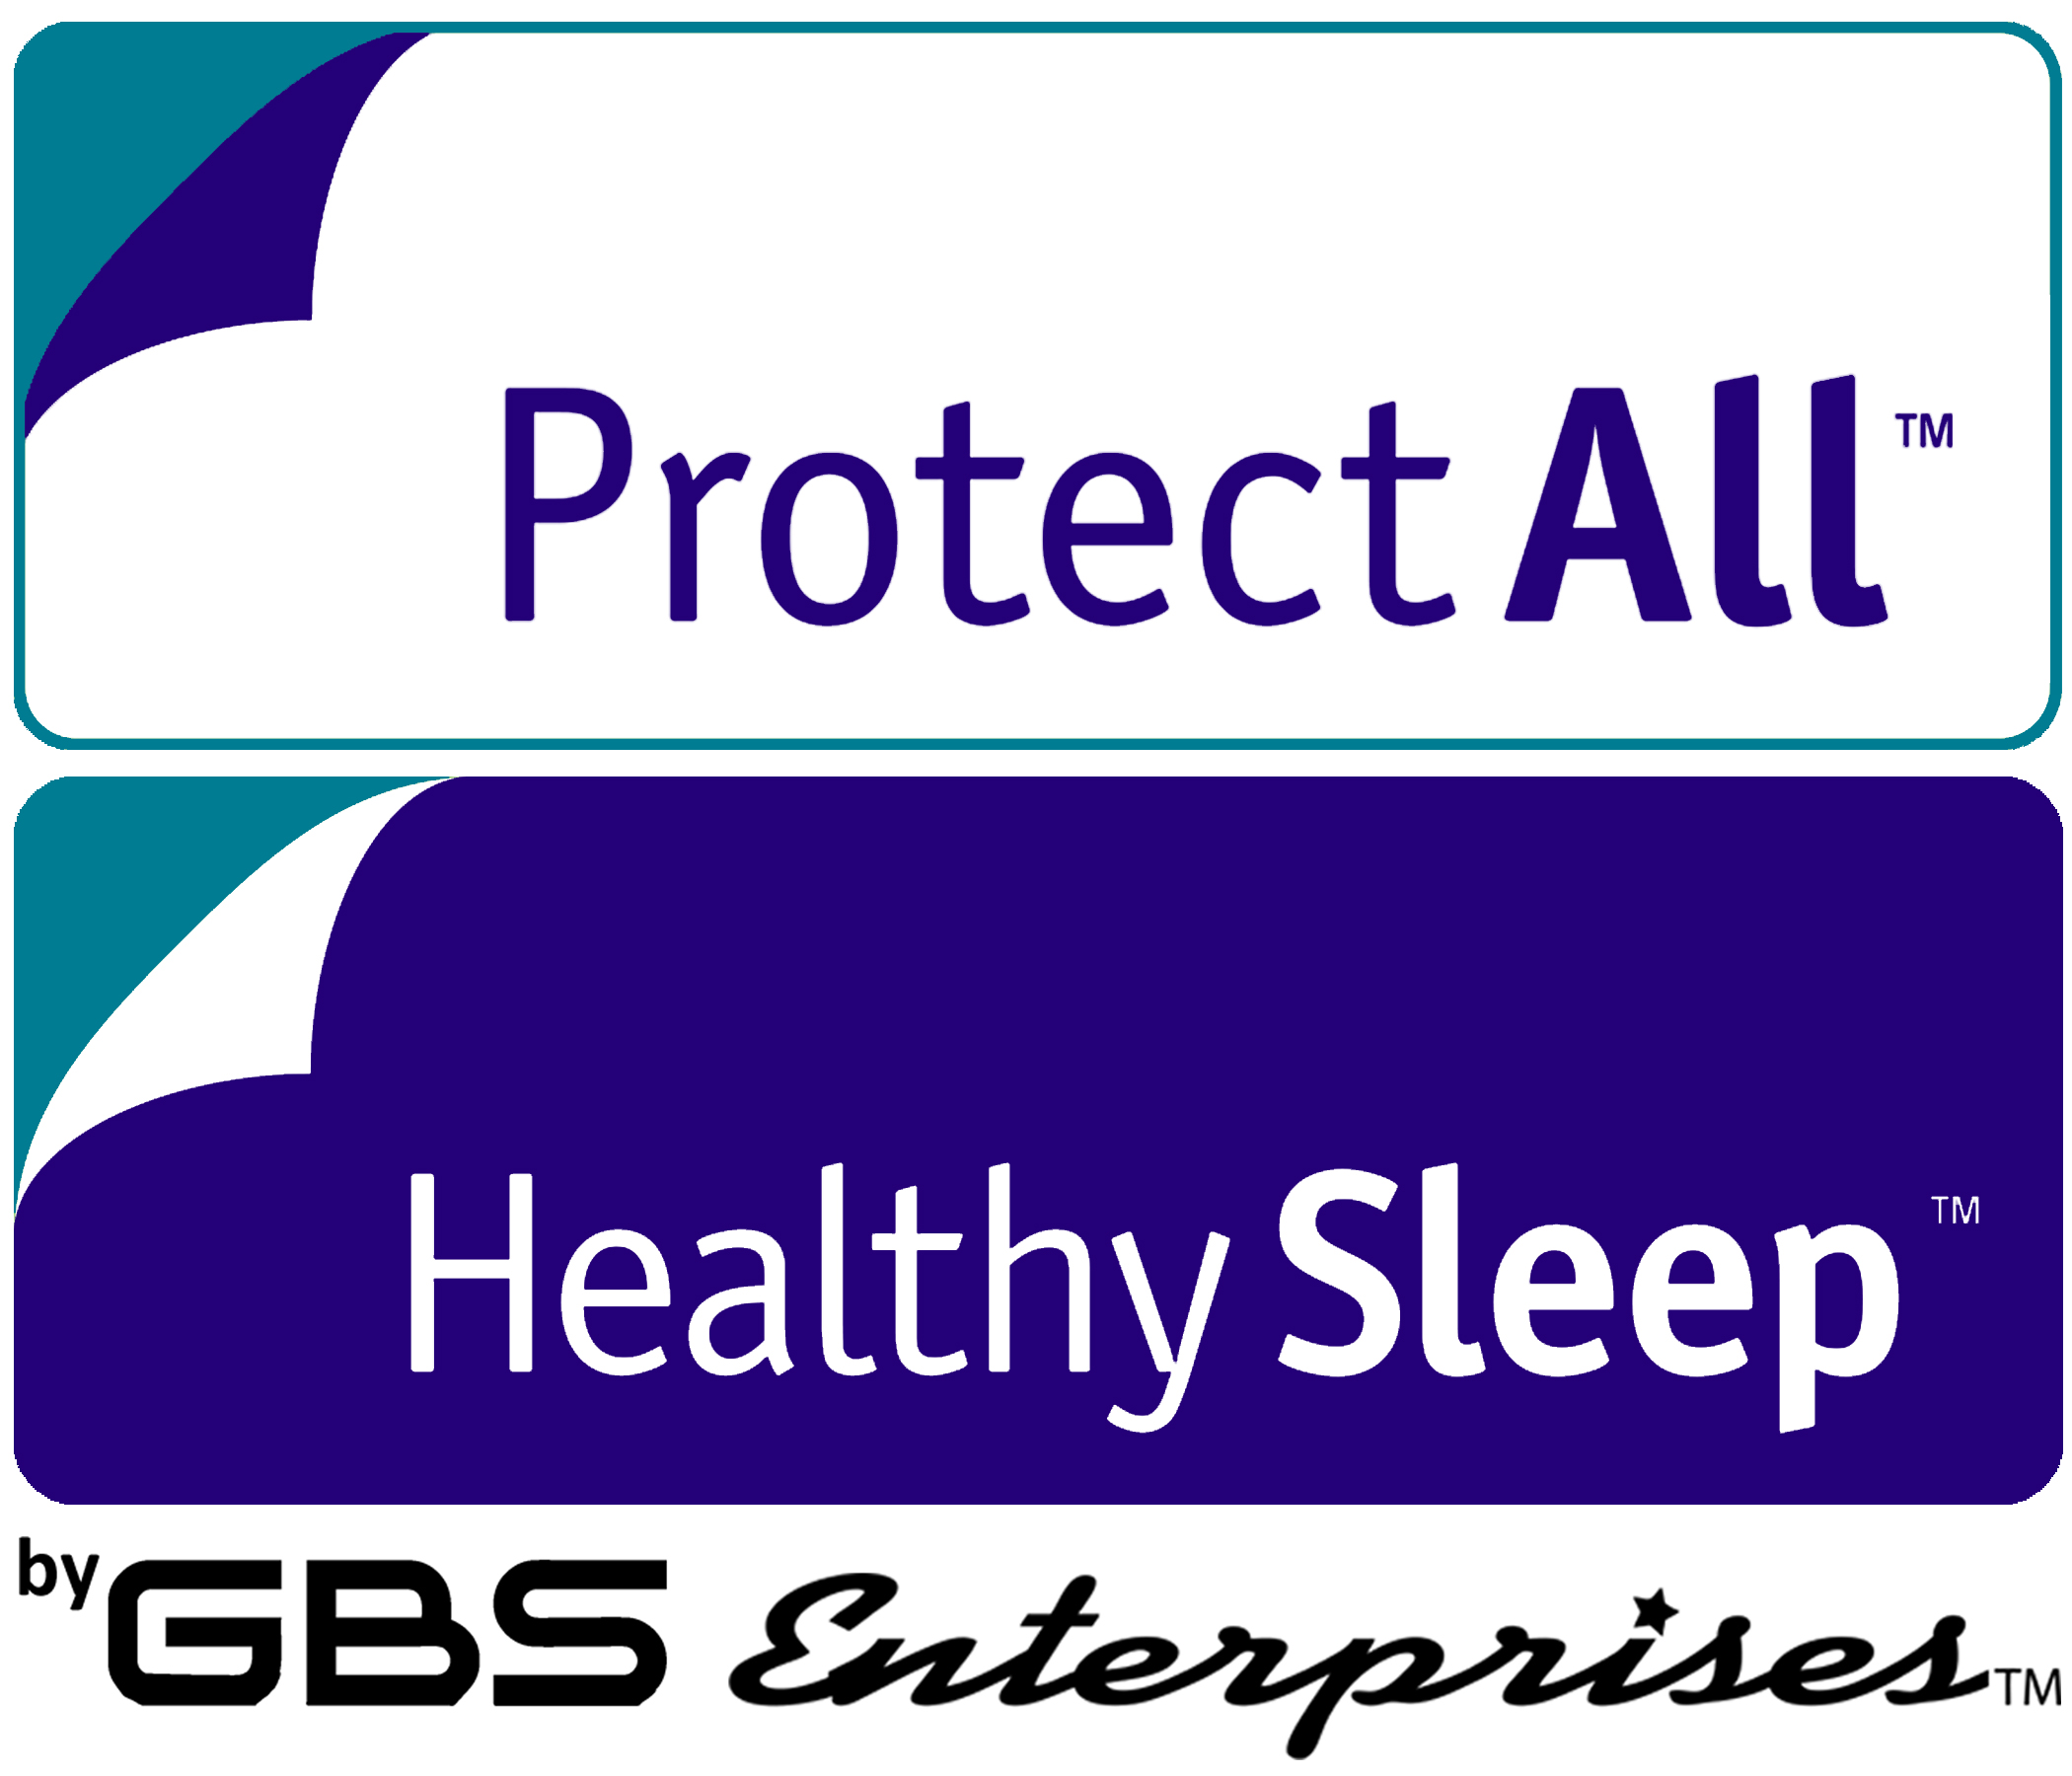 Protect All/Healthy Sleep By GBS Enterprises